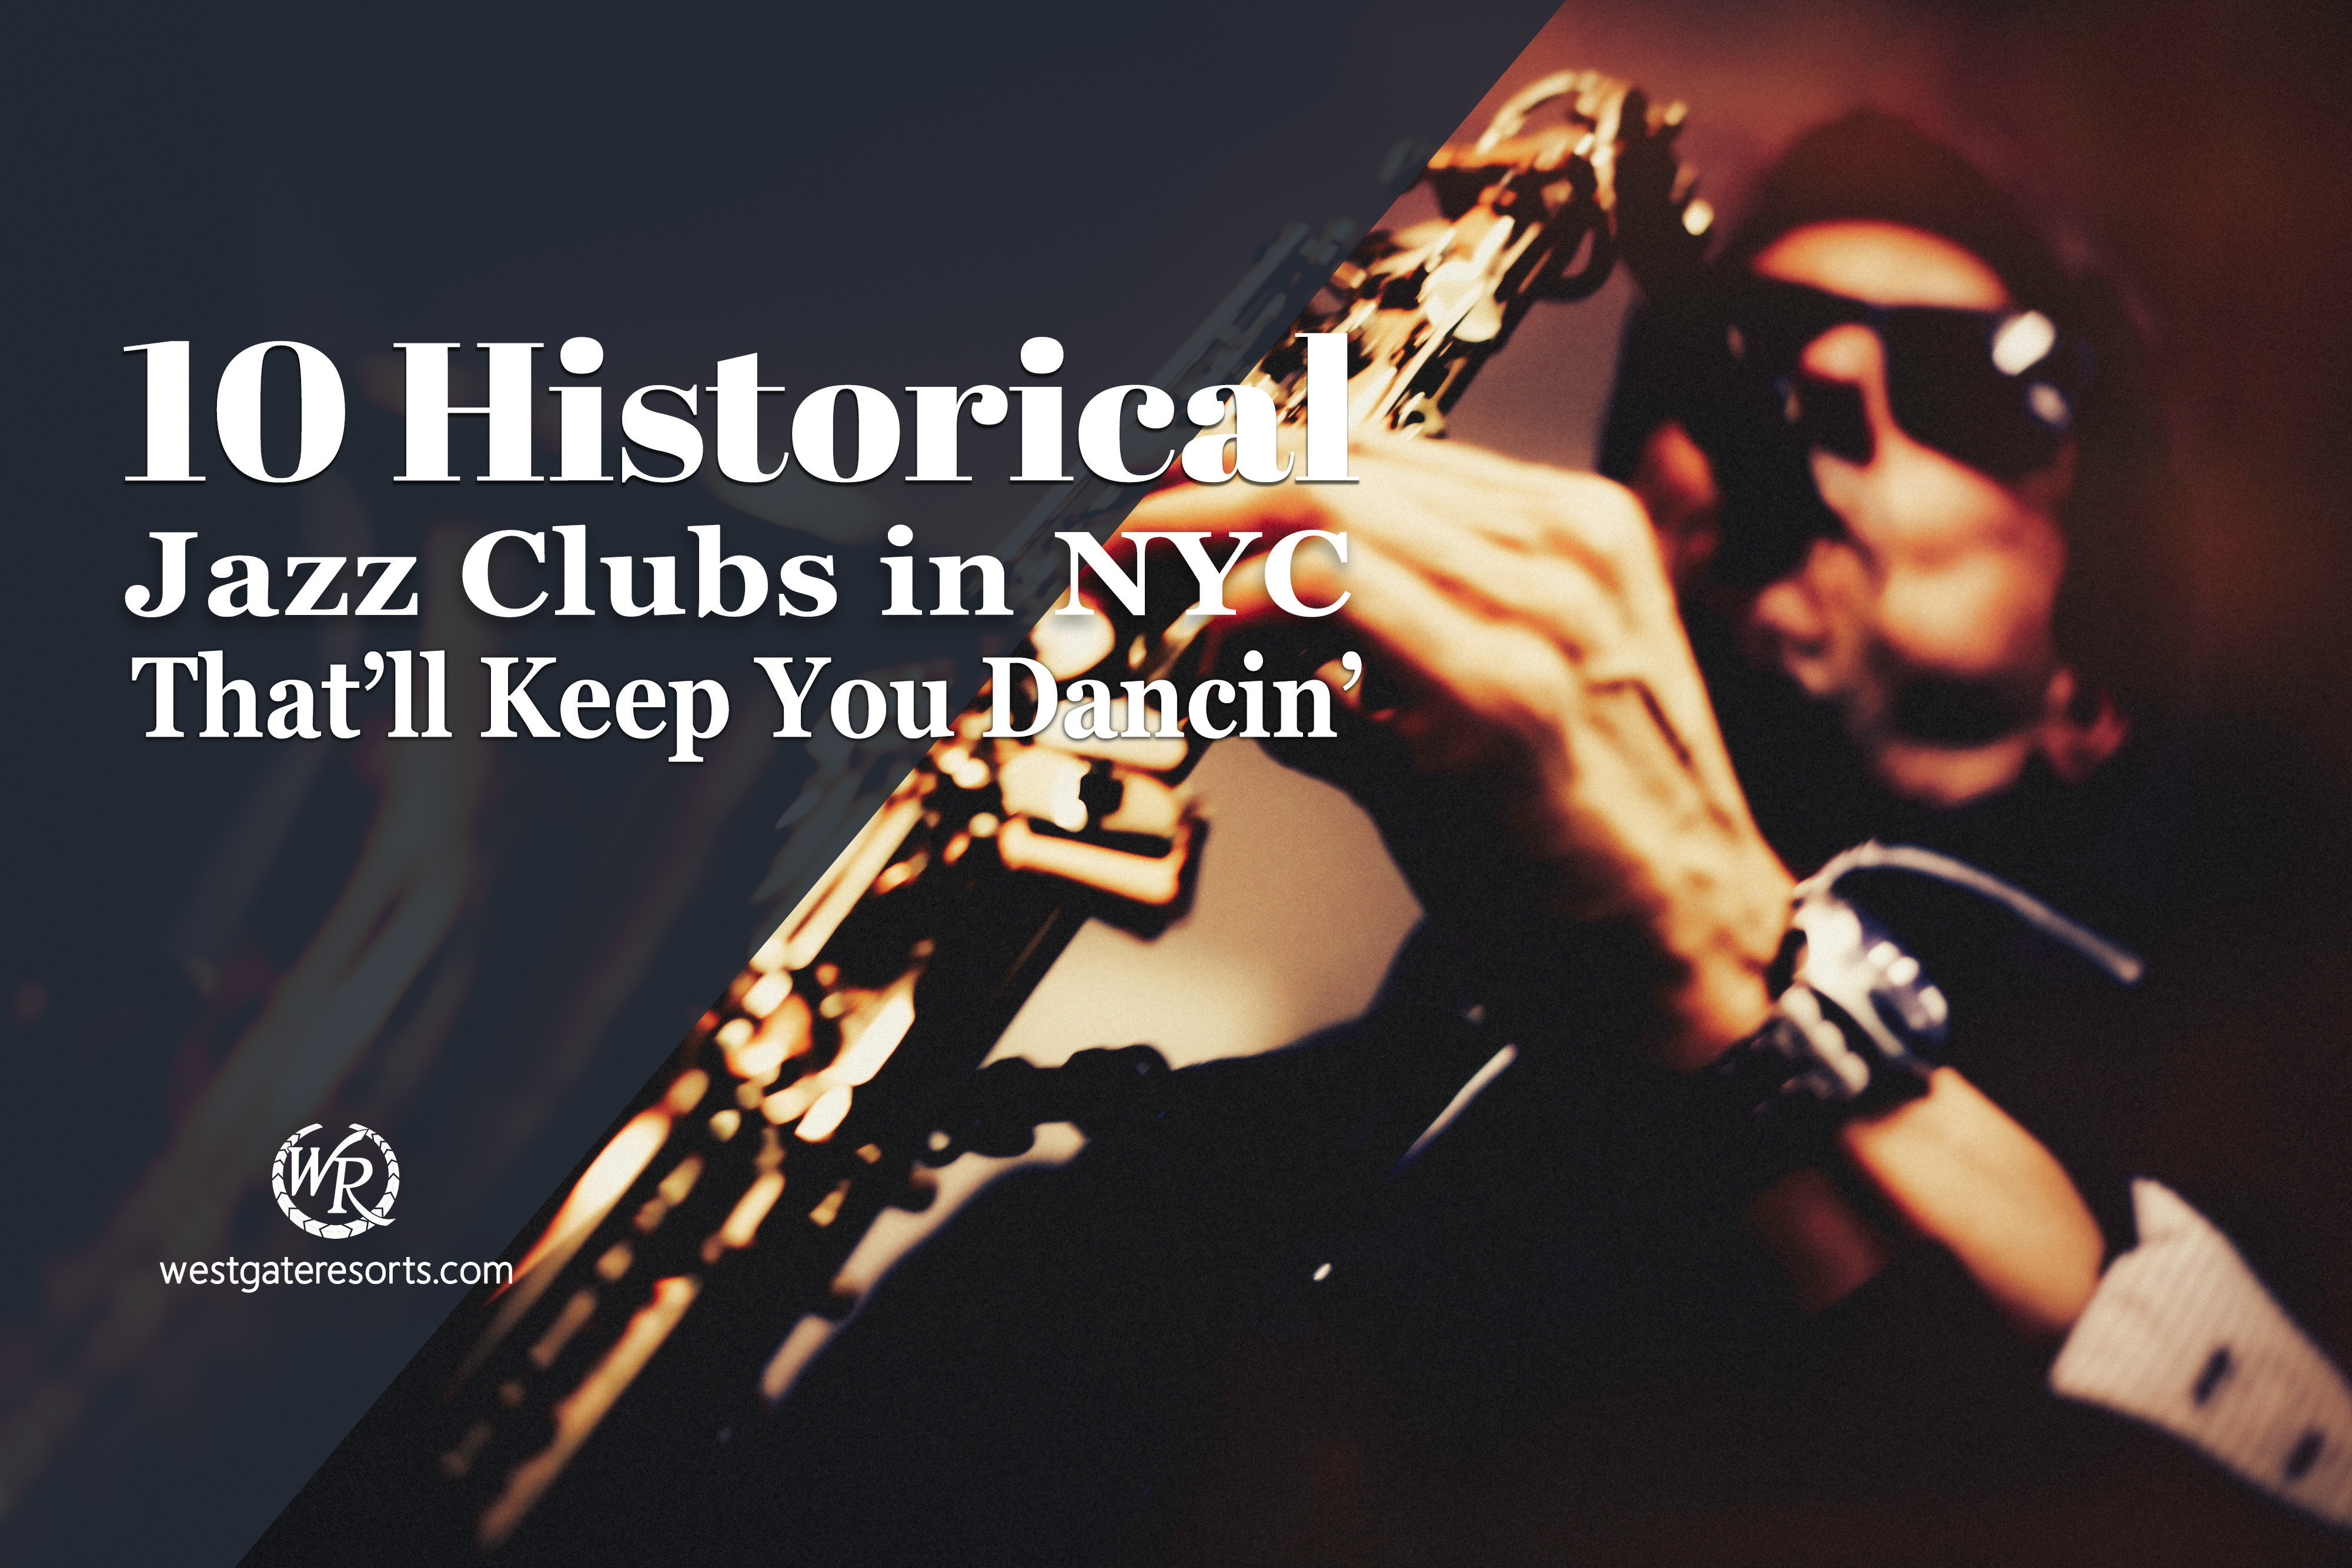 10 Historical Jazz Clubs in NYC That'll Keep You Dancin'